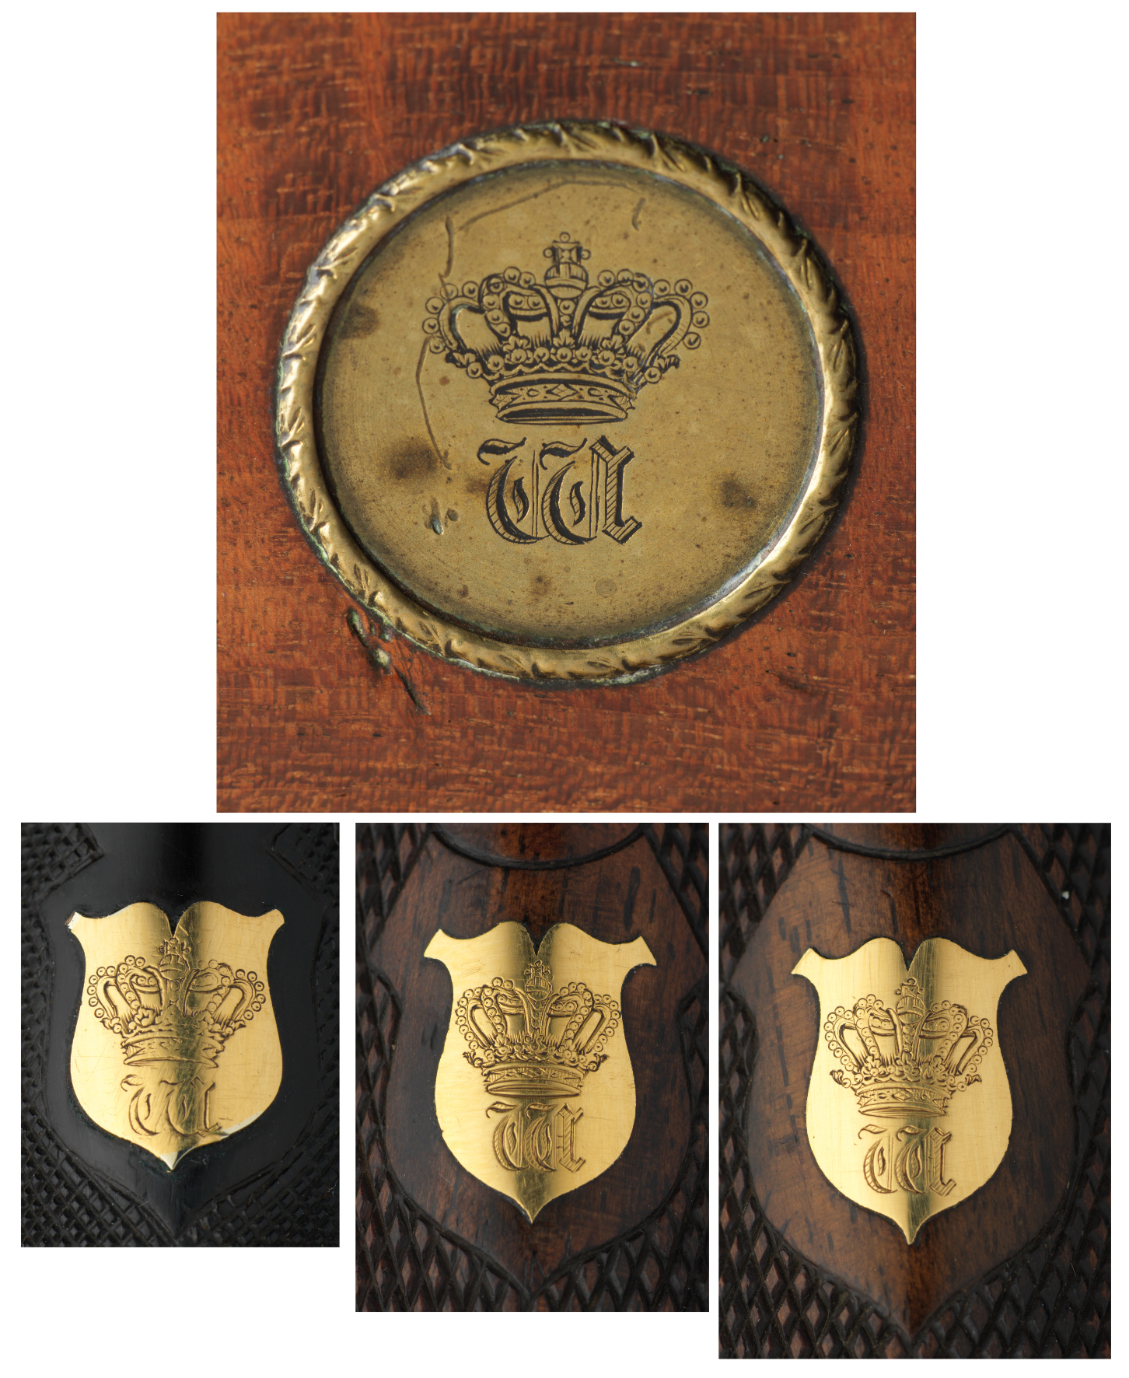 ‡˜Ⓦ AN EXCEPTIONAL CASED SET OF 38 BORE^ 54 BORE AND 120 BORE ADAMS PATENT 1851 MODEL SELF-COCKI - Image 4 of 5